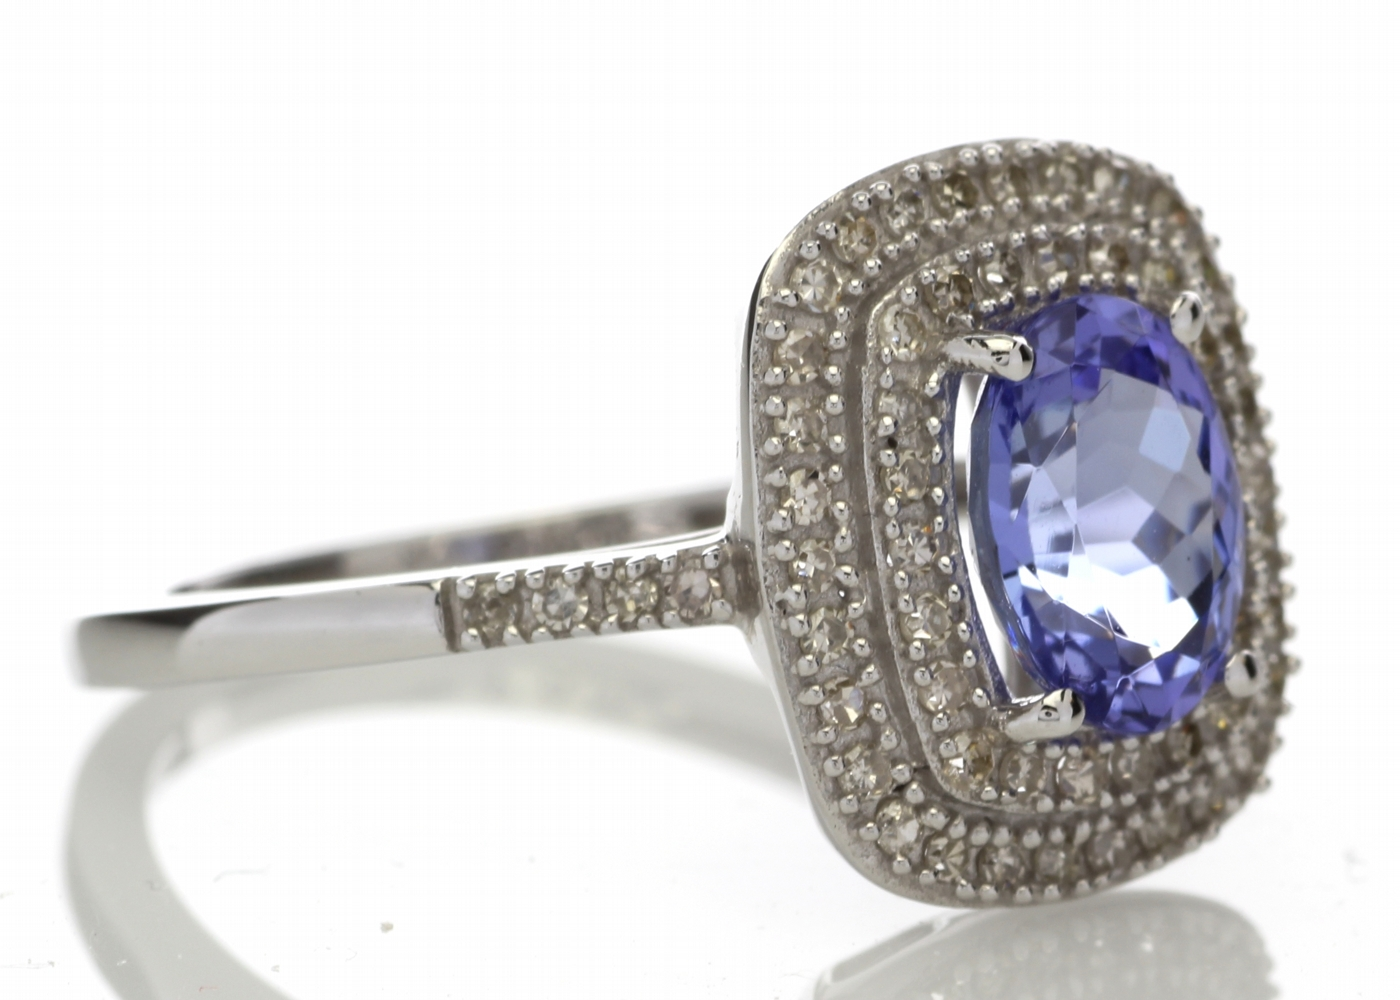 9ct Gold Oval Tanzanite And Diamond Cluster Ring 0.33 Carats - Image 4 of 5